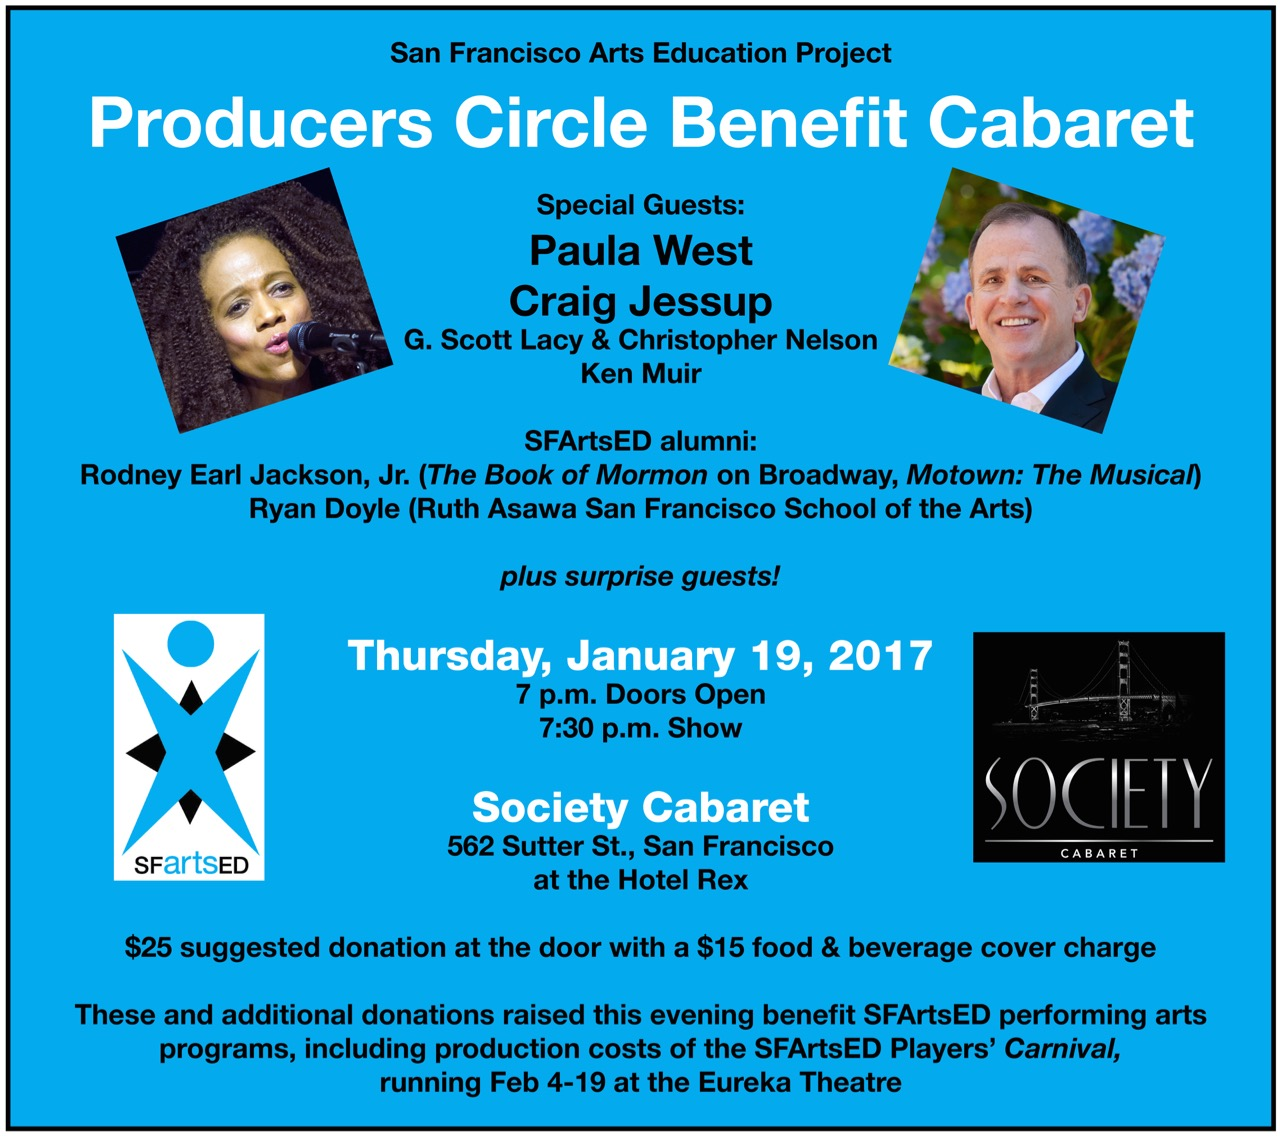 Benefit Cabaret on Jan. 19